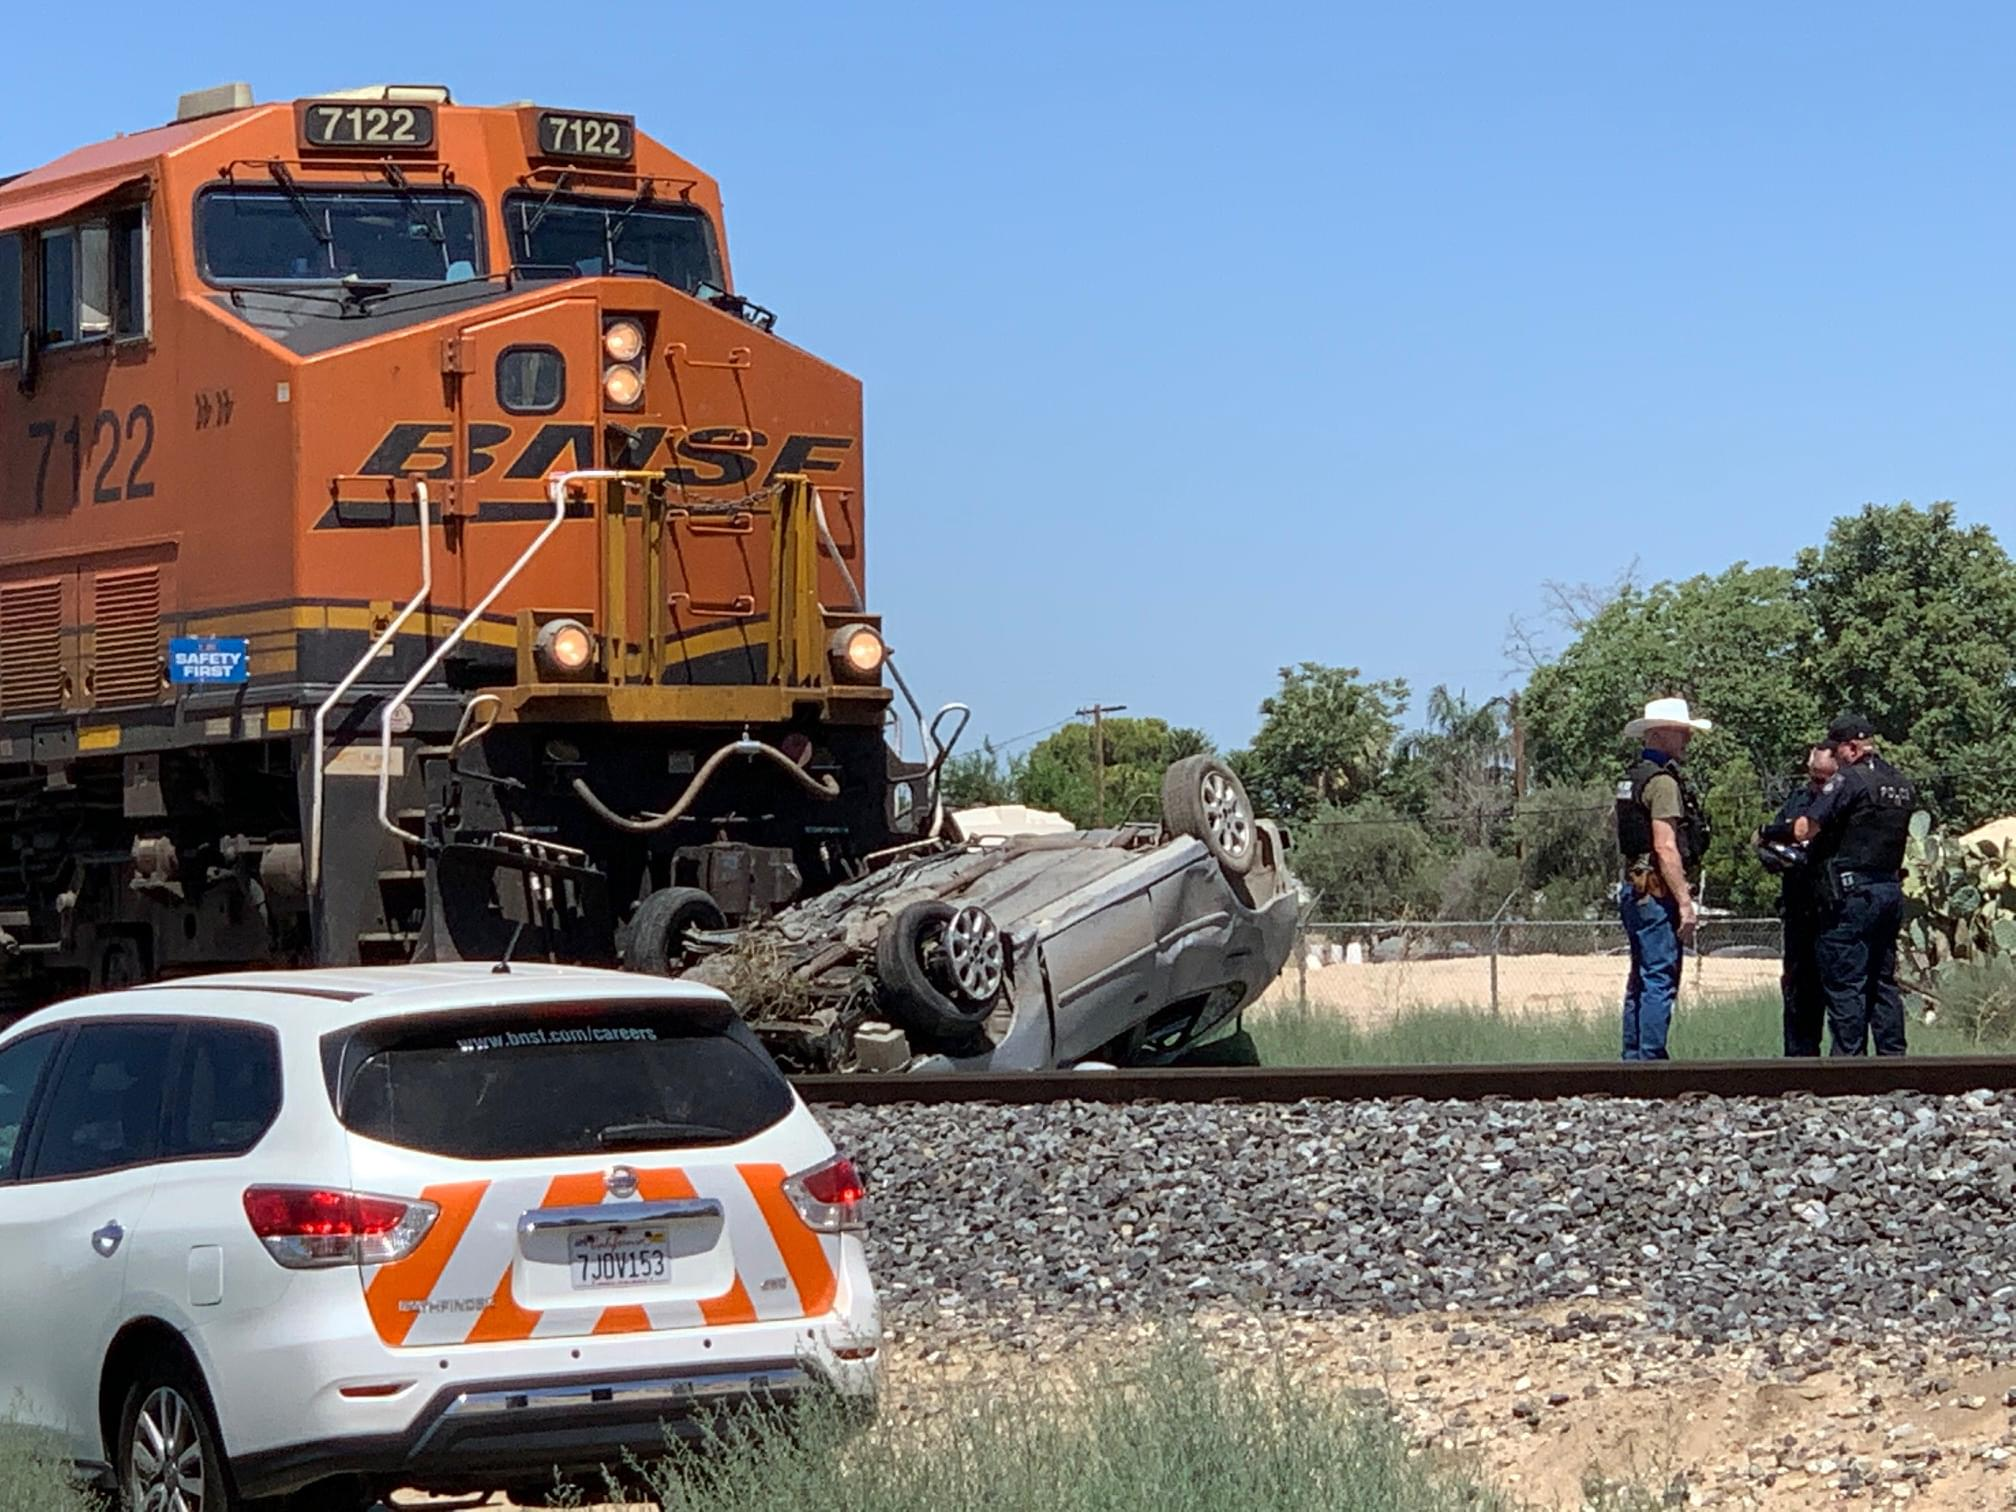 One Dead, One Injured in Train Vs. Vehicle Collision